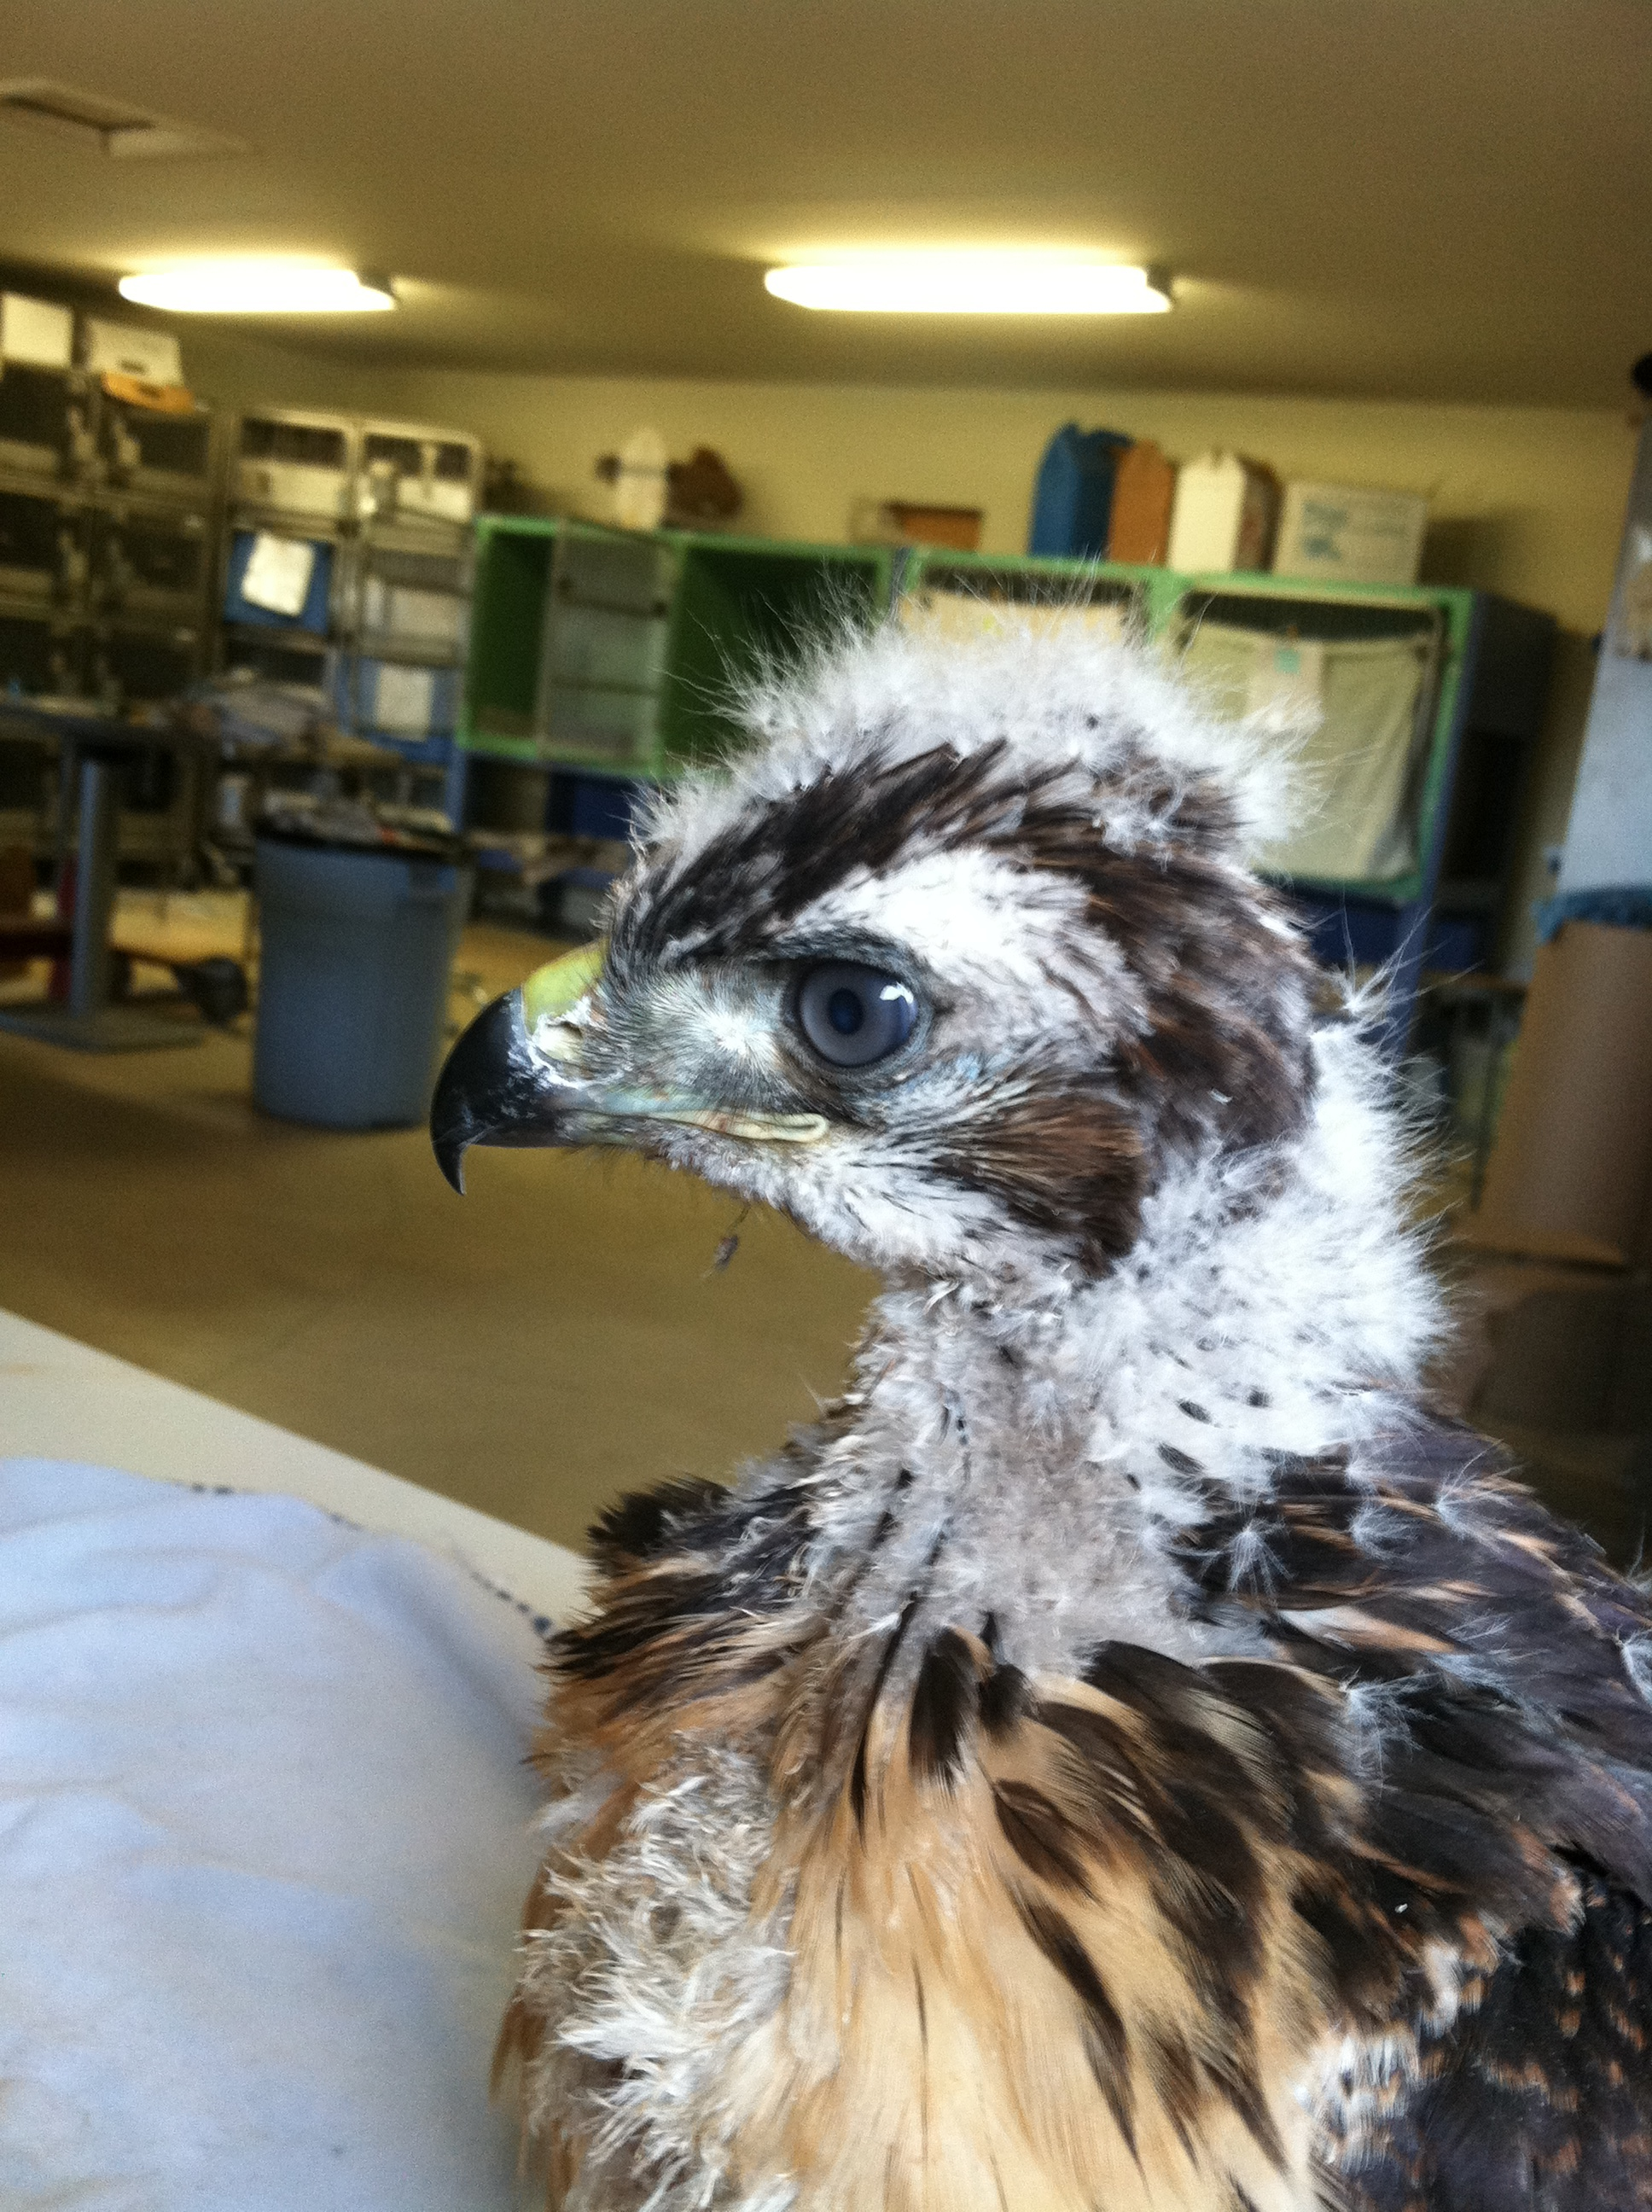 Baby Red-Tailed Hawk. My eyes are blue now, but when I mature they will turn brown